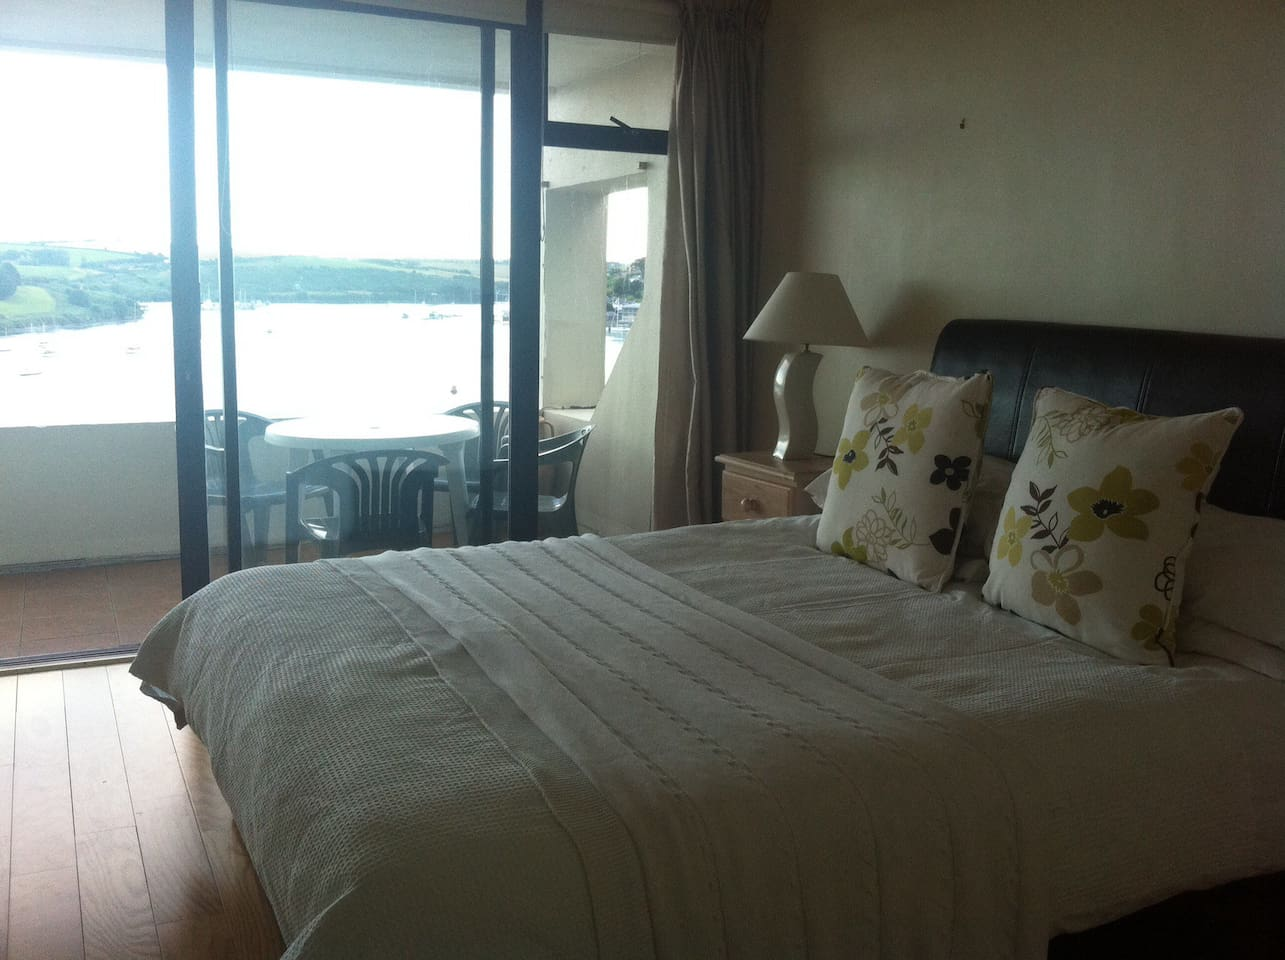 Wake up to a view of Kinsale harbour and birdsong.